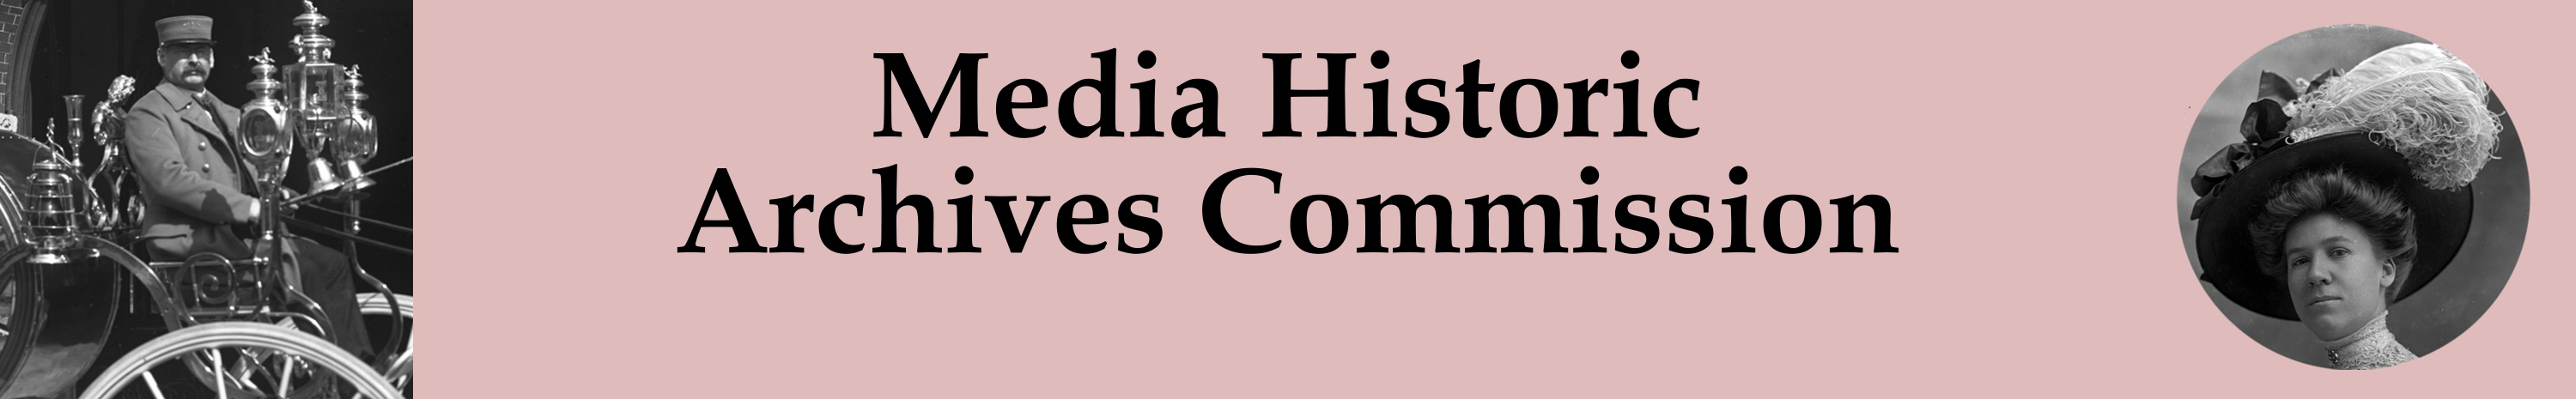 Media Historic Archives